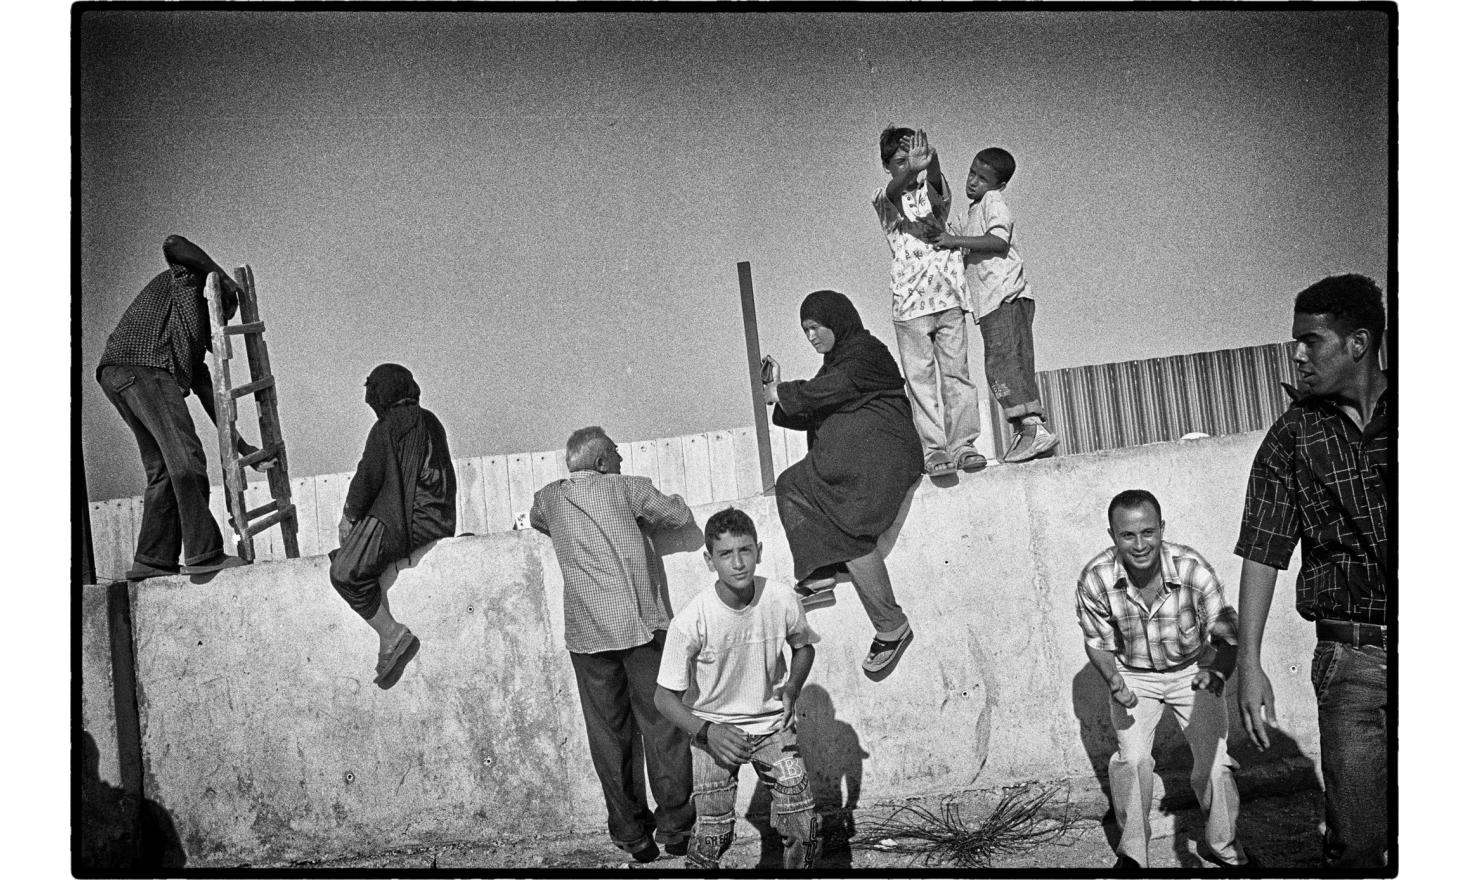 The most impermeable border in the world was opened under the pressure of Palestinian crowd. For the first time since 1982, Palestinians freely cross the border with Egypt. Gaza, September 2005.